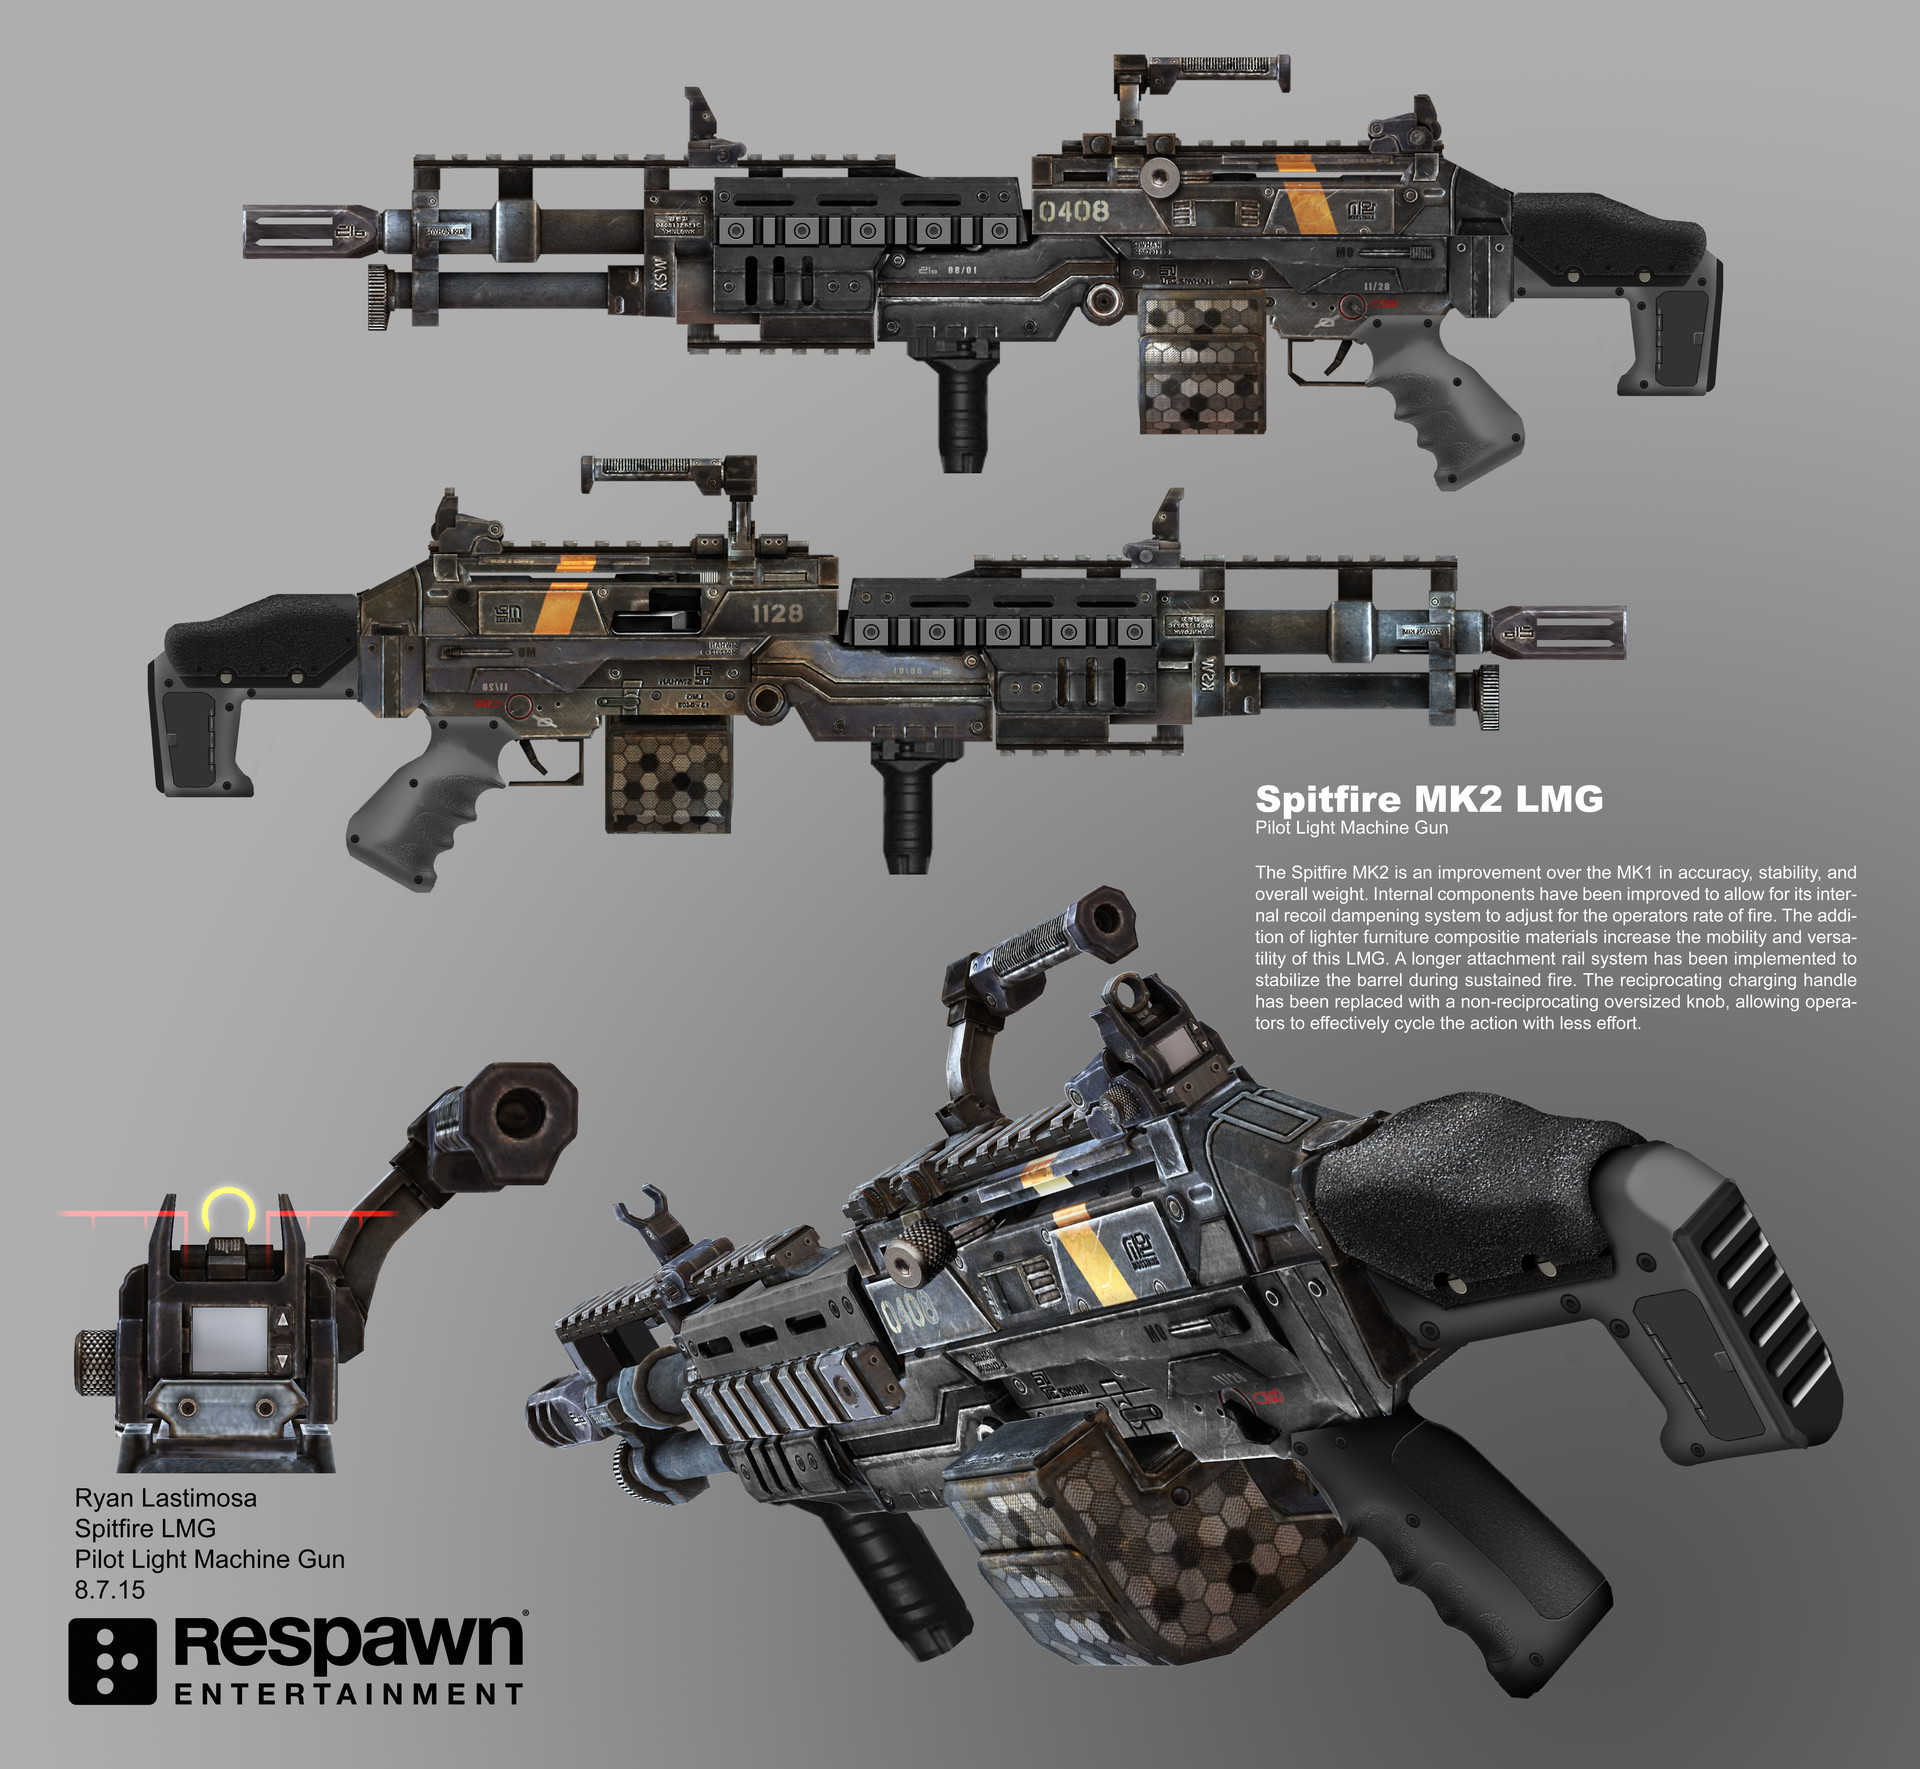 ArtStation - Titanfall 2 Spitfire MK2 Light Machine Gun, Ryan Lastimosa